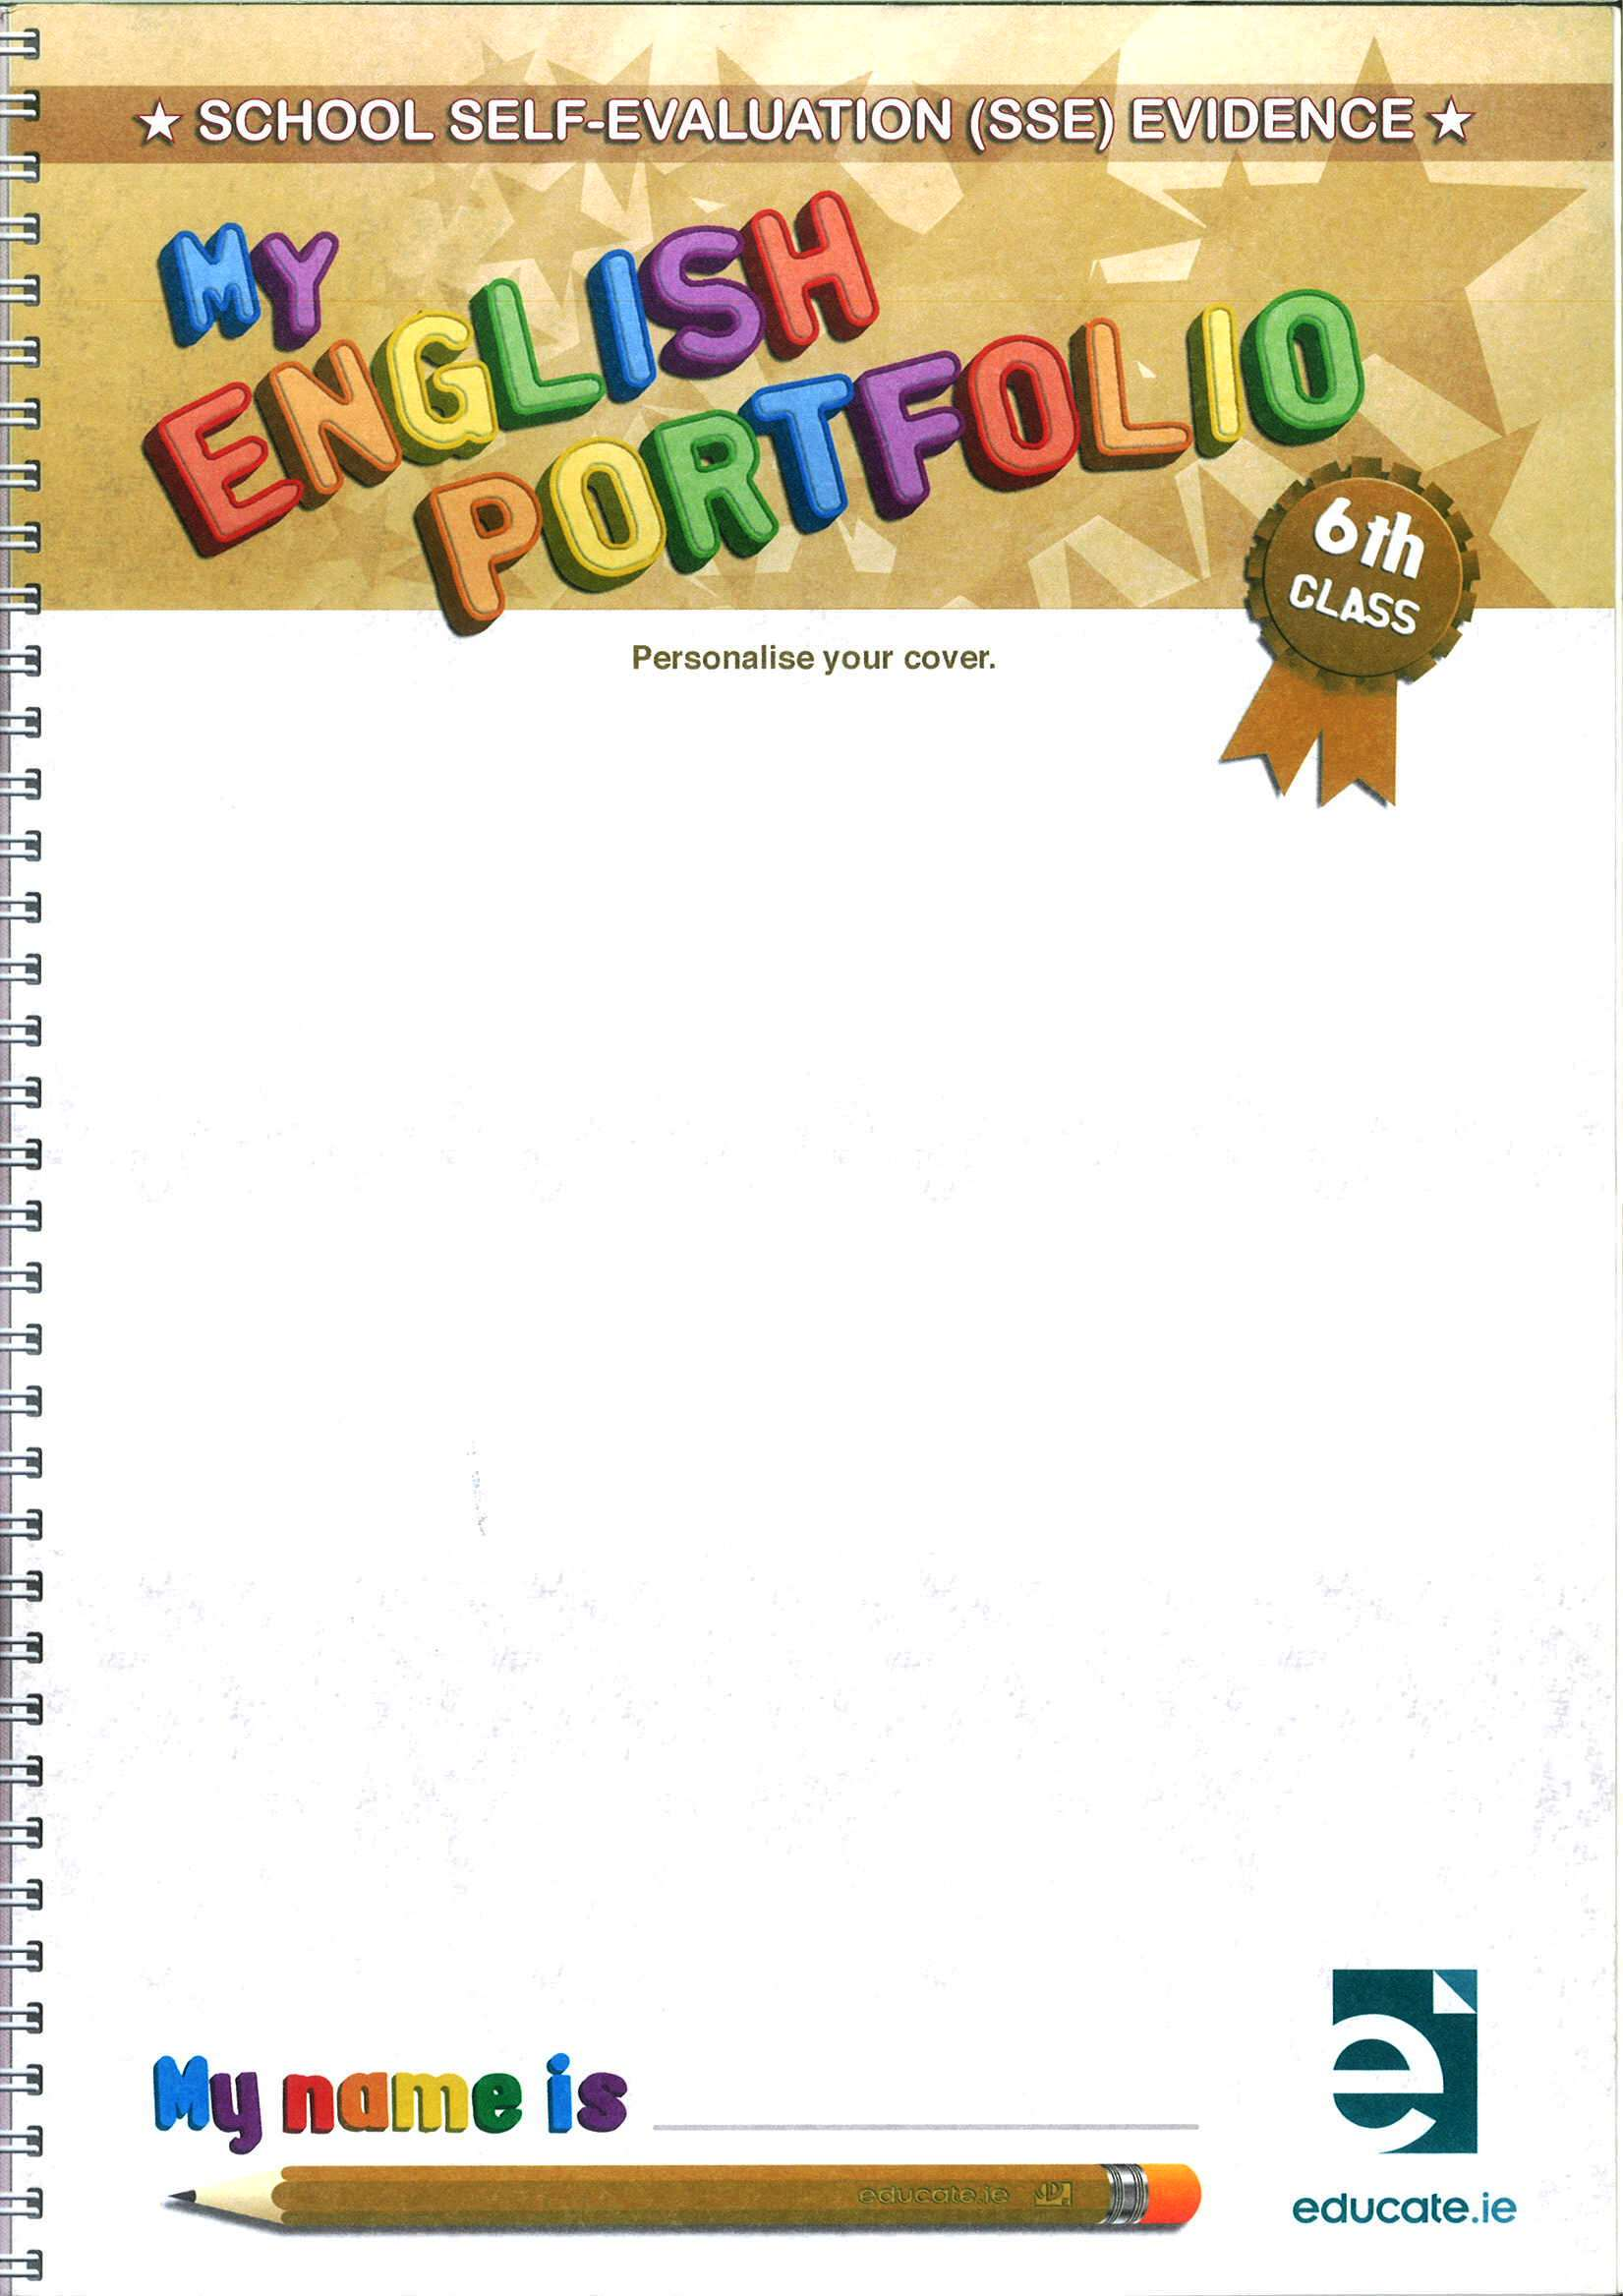 english portfolio Using a portfolio in a middle school english class 57 reading goals each student will be encouraged to read self-selected books, magazines, and newspapers for leisure.